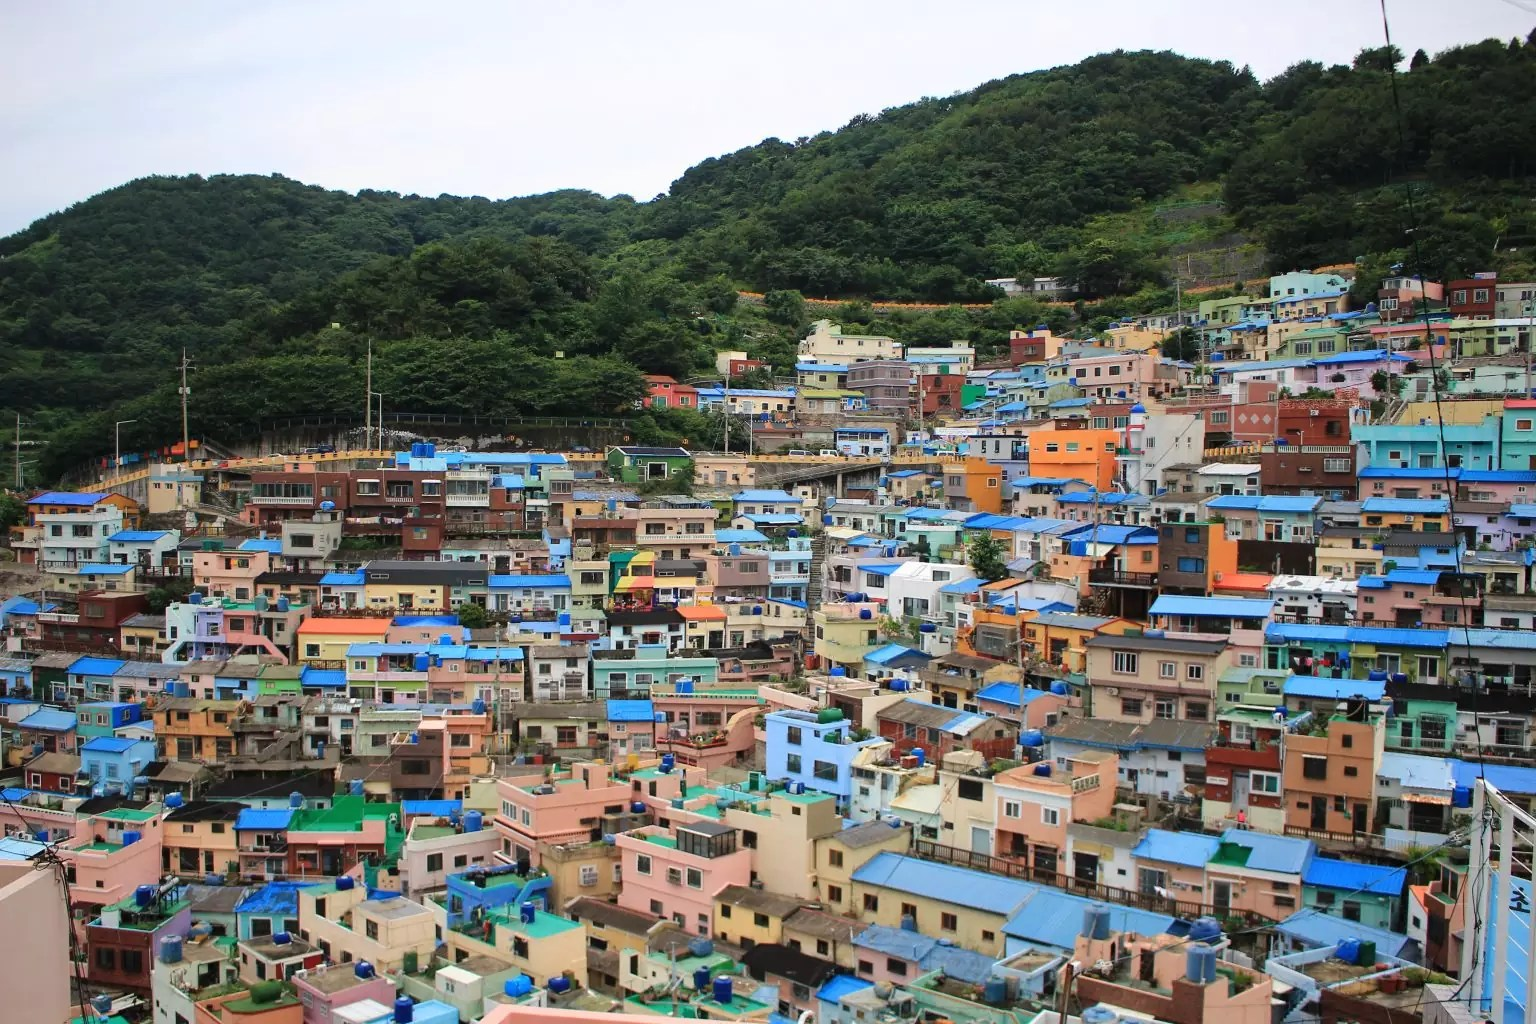 gamcheon culture village   What to to Do, See and Eat in Busan Korea